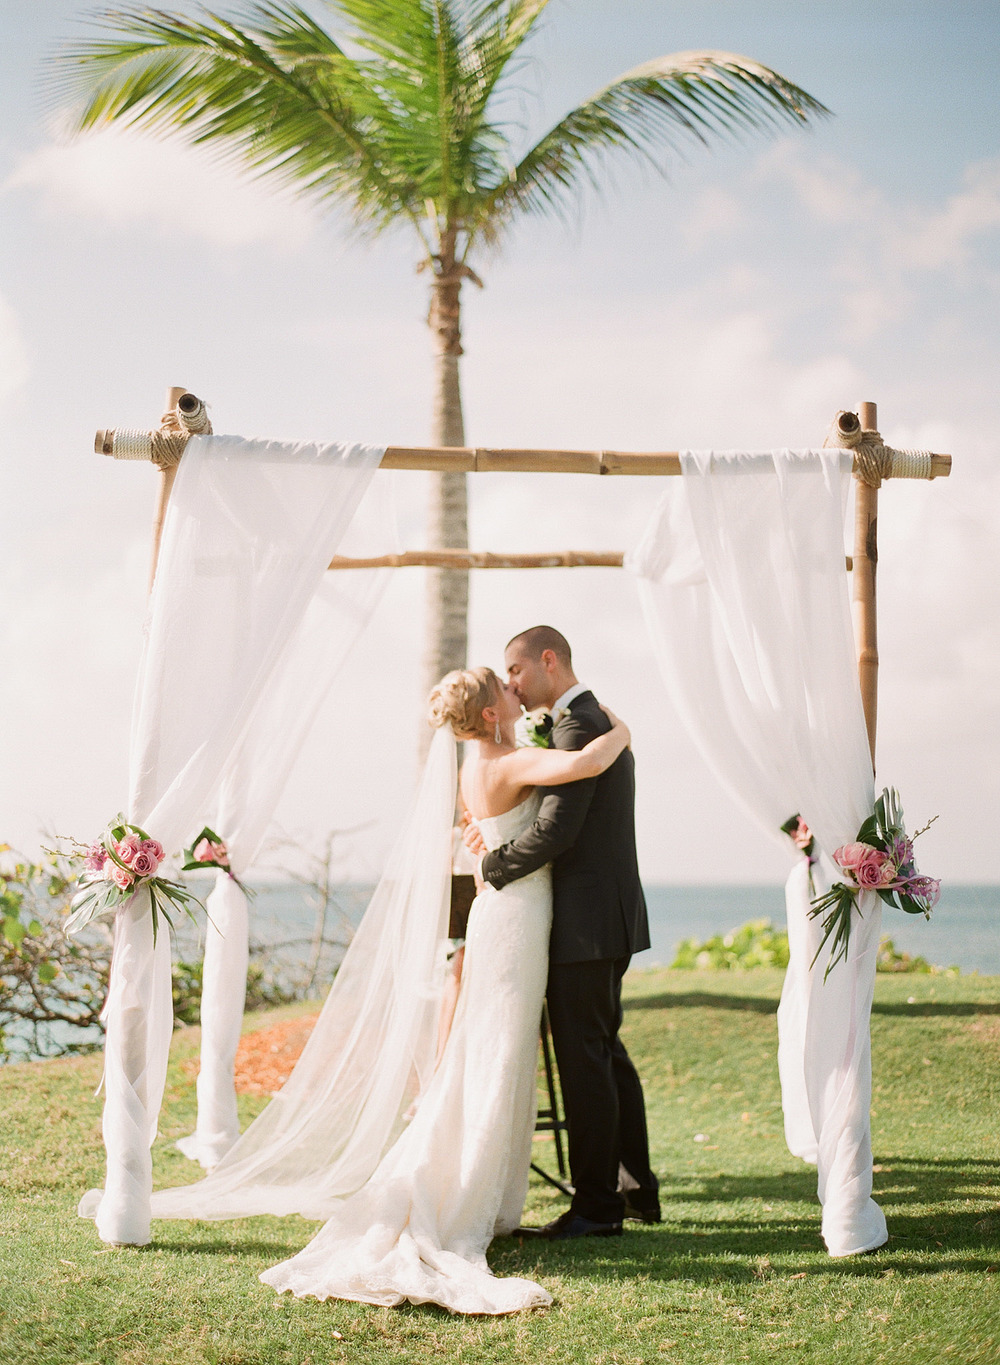 bride and groom kiss under their bamboo chuppa at their Vieques Island Wedding at the W hotel while Destination wedding photographer Lexia Frank photographs their wedding on film